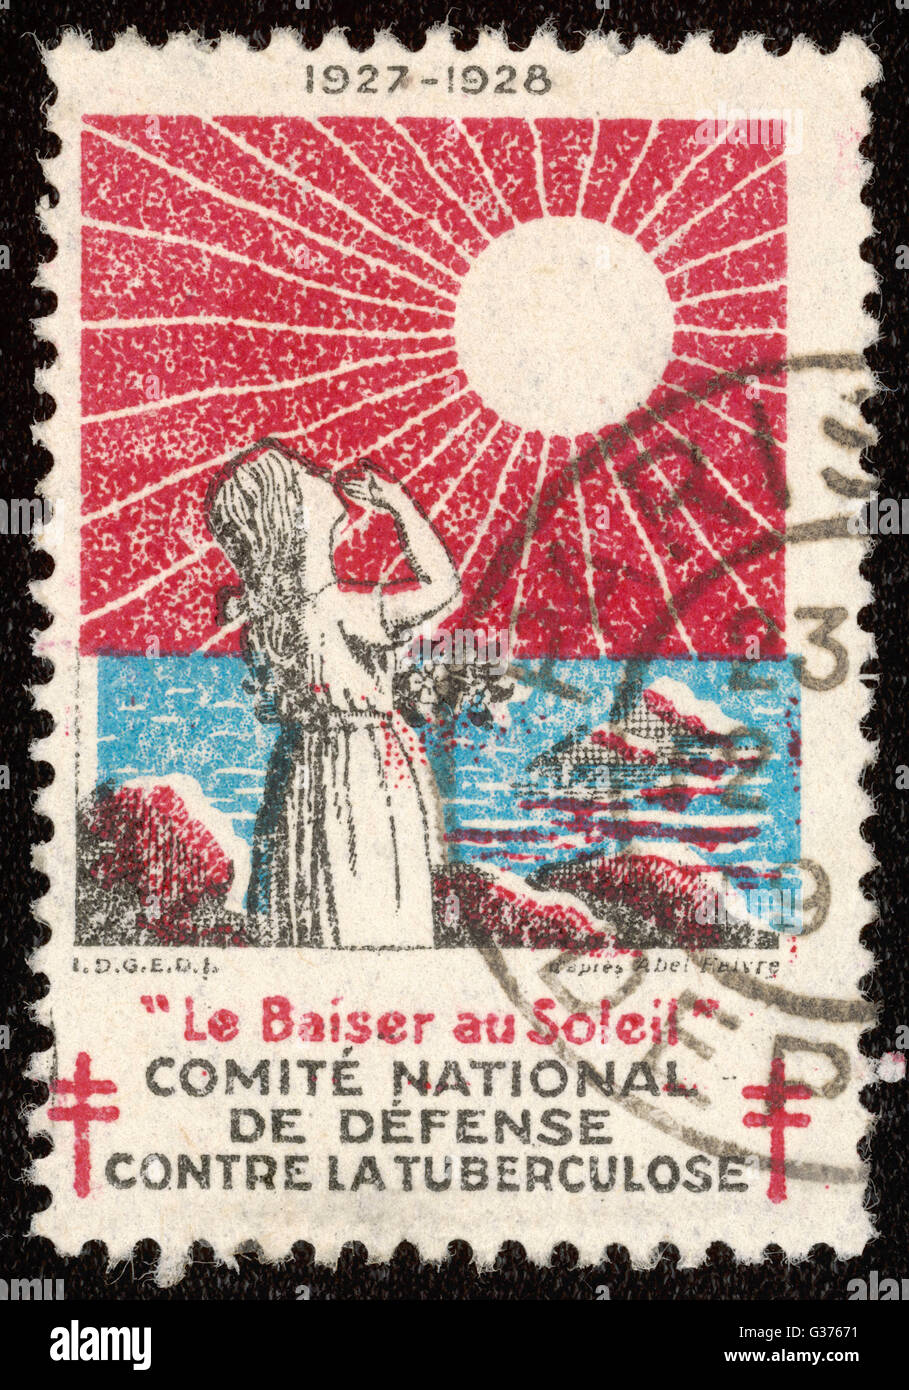 French postage stamp promoting  sunlight to fight  tuberculosis.        Date: 1927-1928 - Stock Image